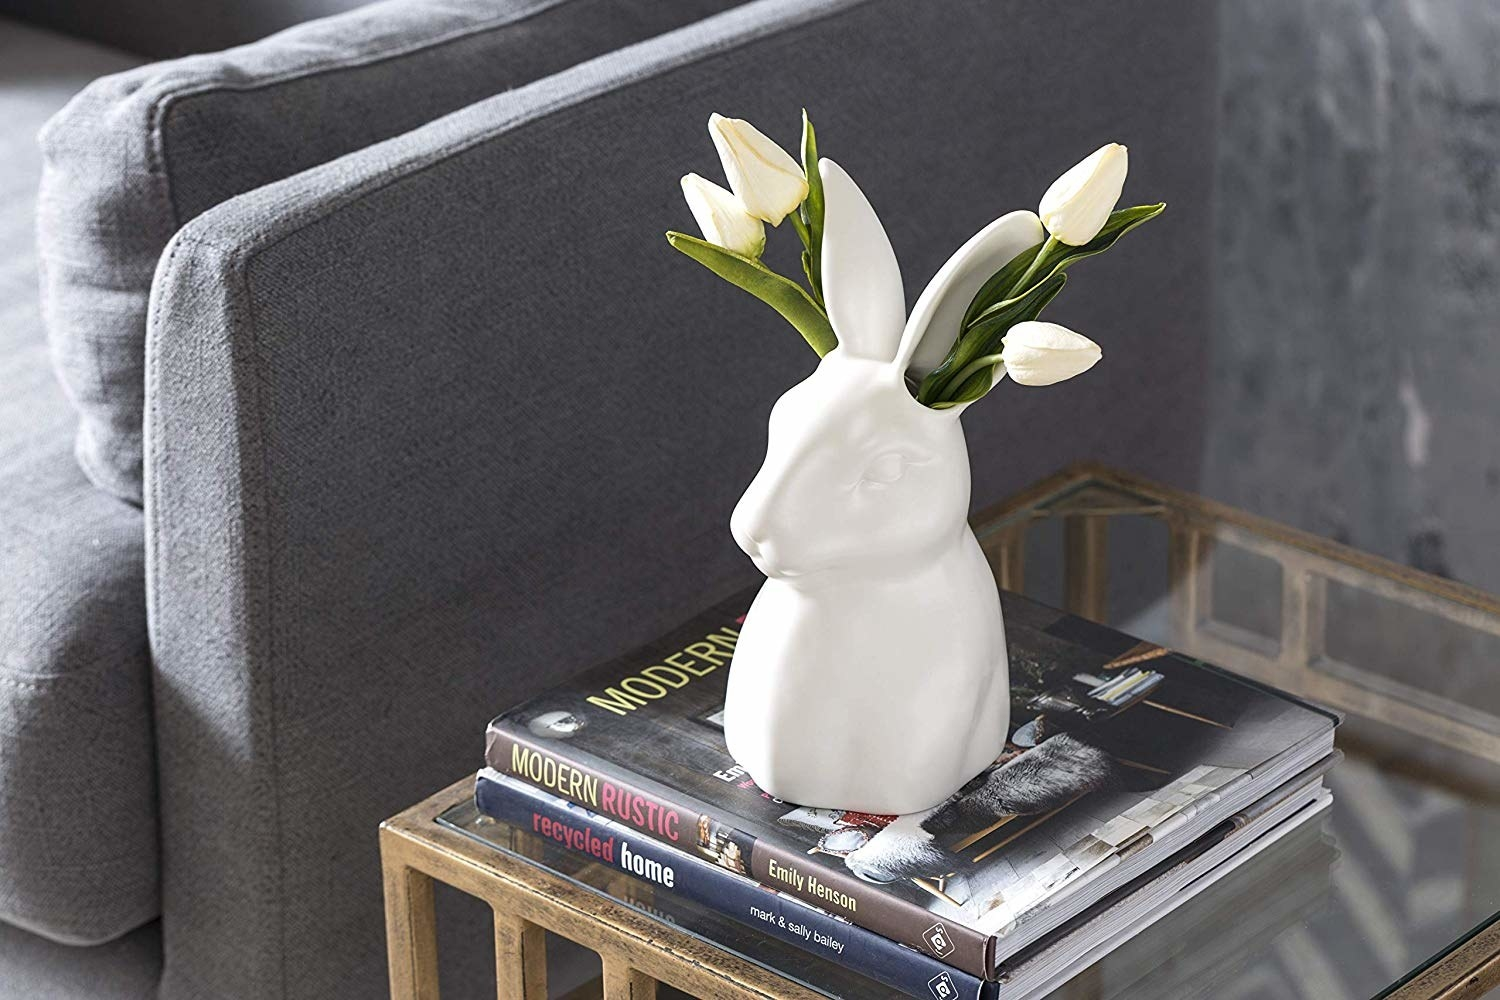 bunny vase with flowers coming out of ears